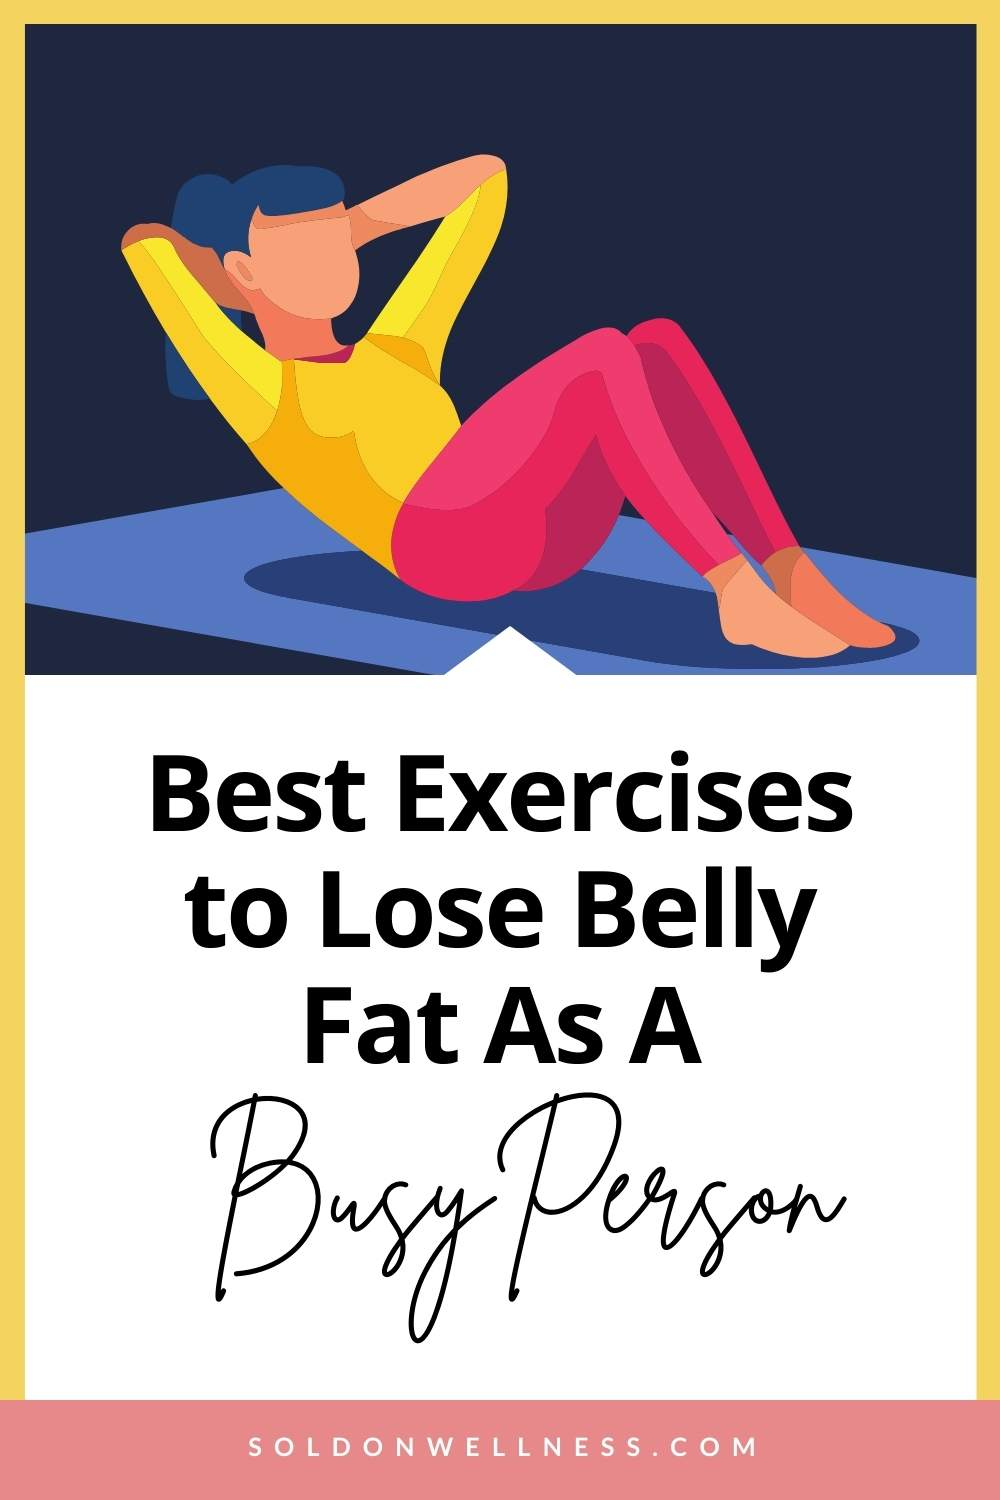 What is the best exercise to lose belly fat